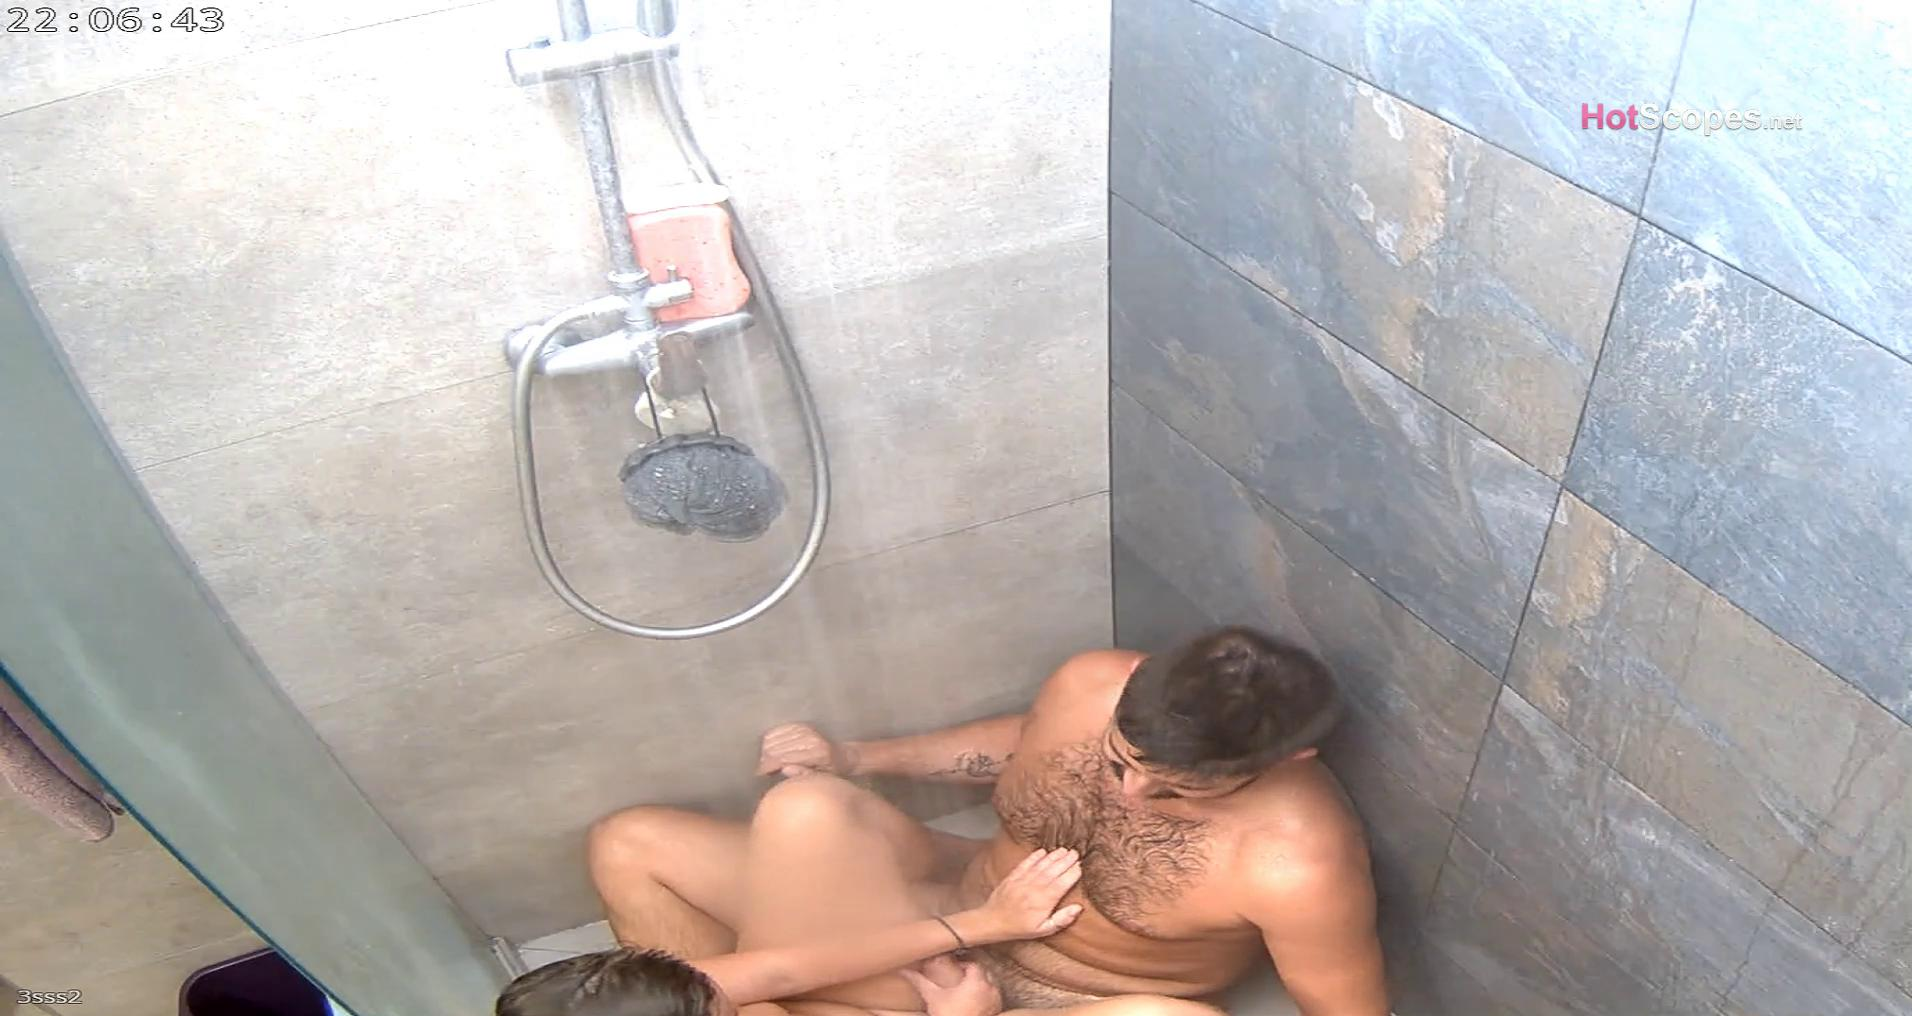 Reallifecam Hanna and Aaron hot blowjob and fucking in the shower 12 10 2021